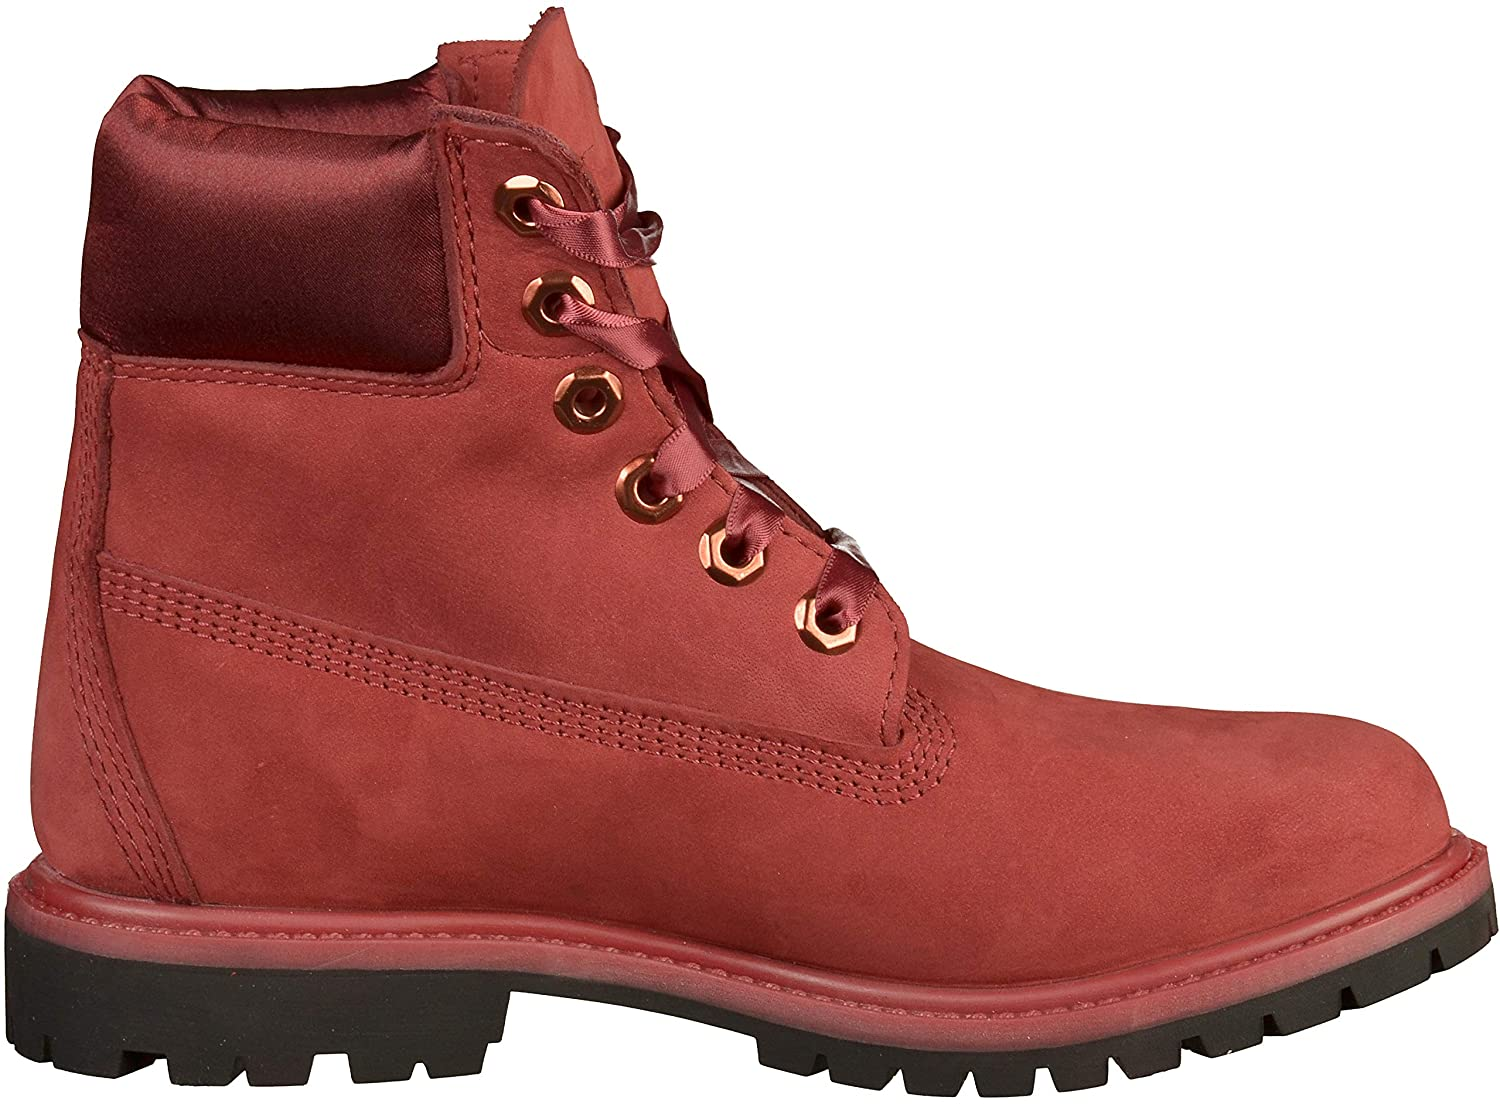 Womens Timberland 6 Inch Premium Boot Velvet Red Ankle Boots